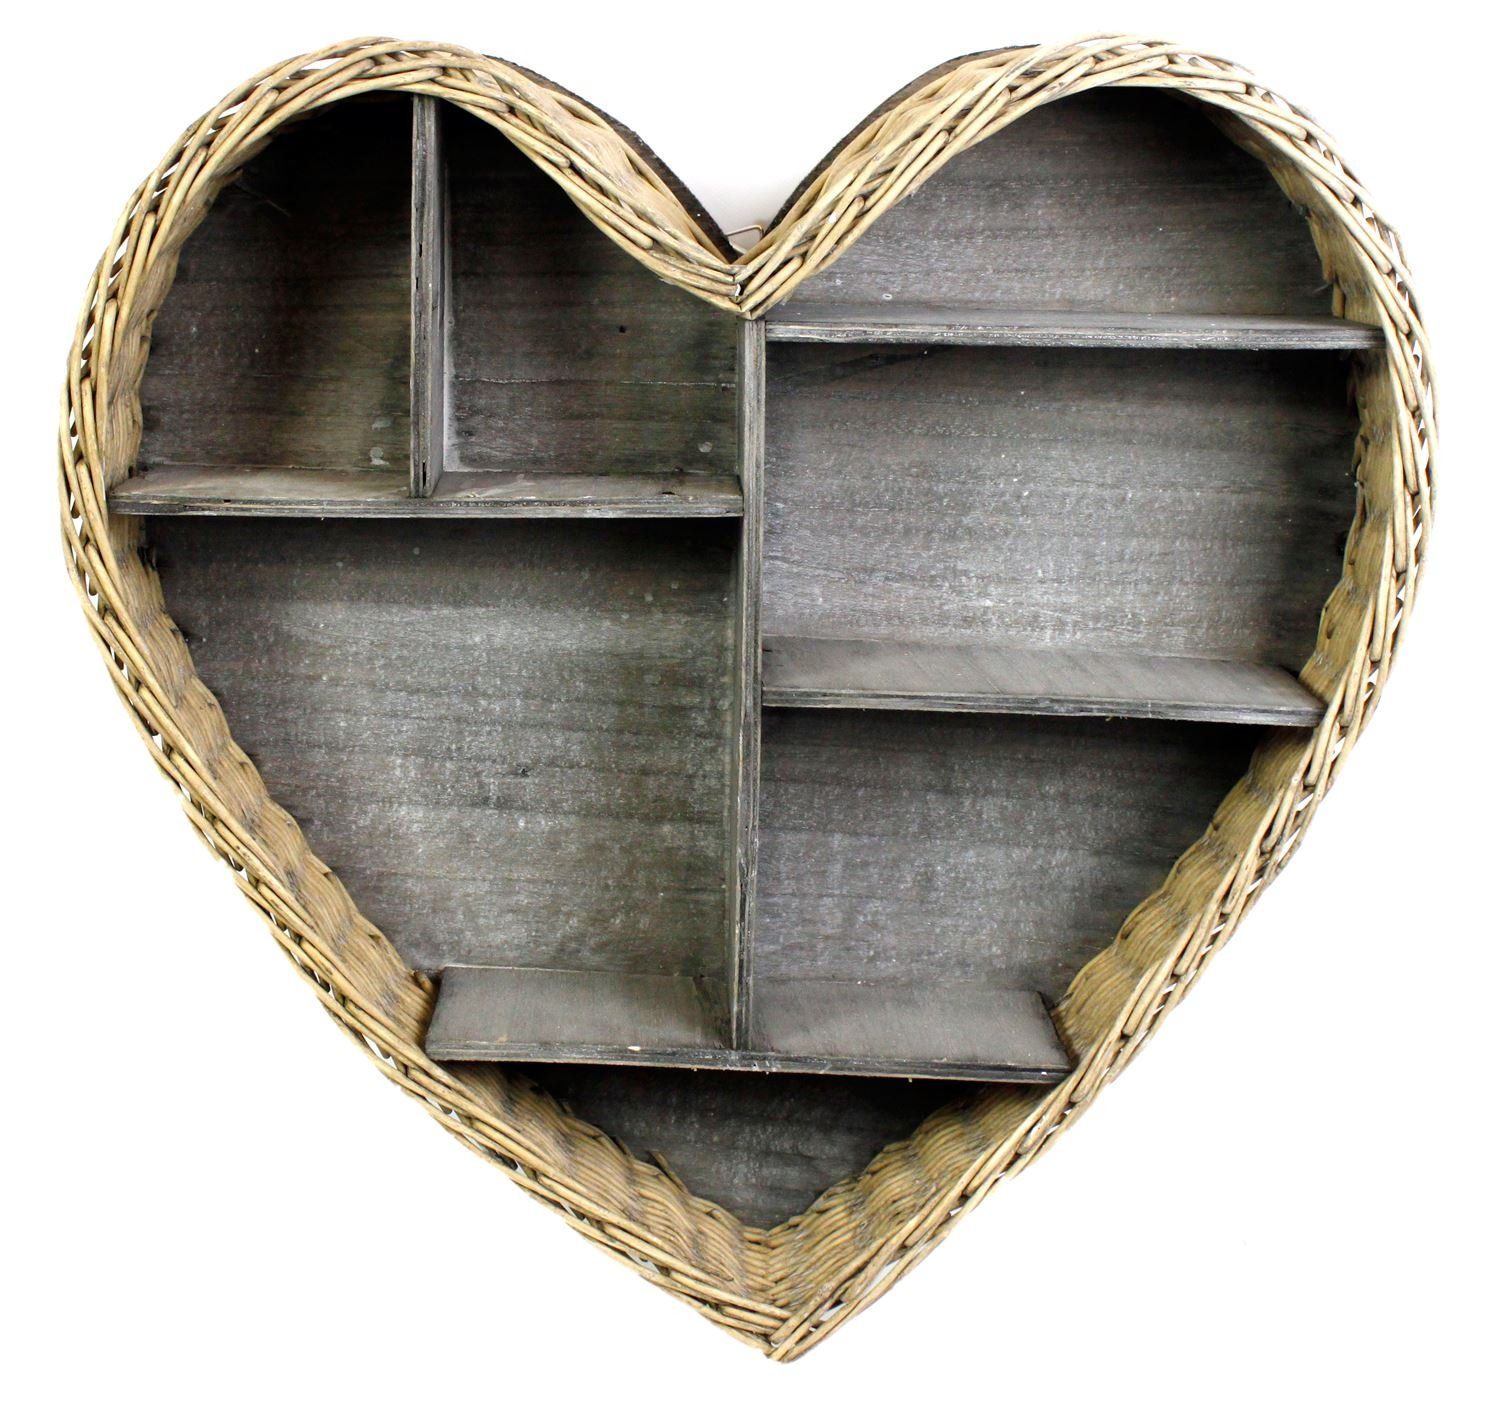 Penzer Large Heart Wicker & Wooden Display shelves wall unit